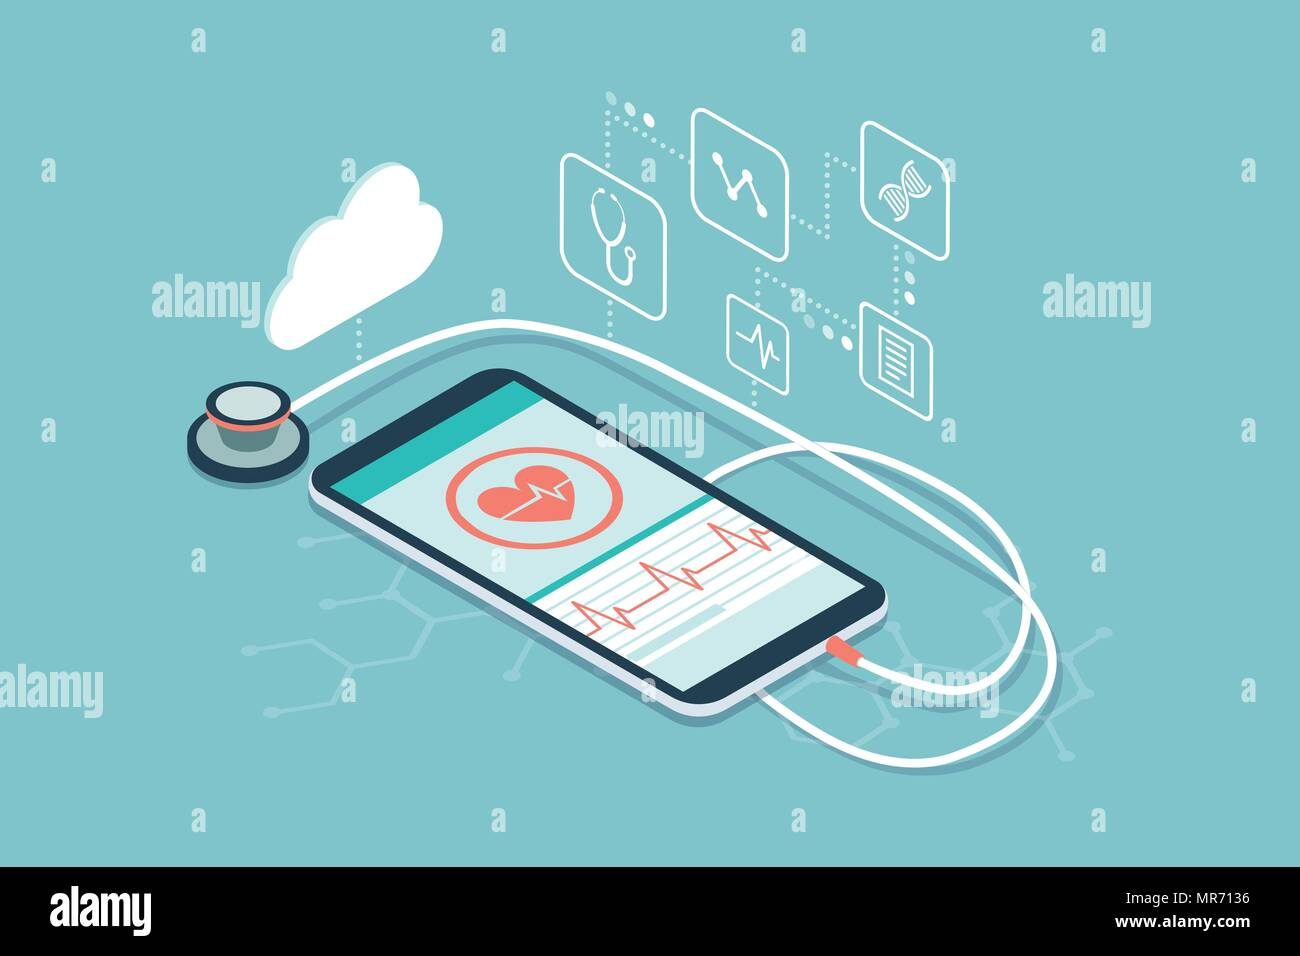 Digital stethoscope connected to a smartphone and icons: innovative medical diagnosis and technology concept - Stock Image